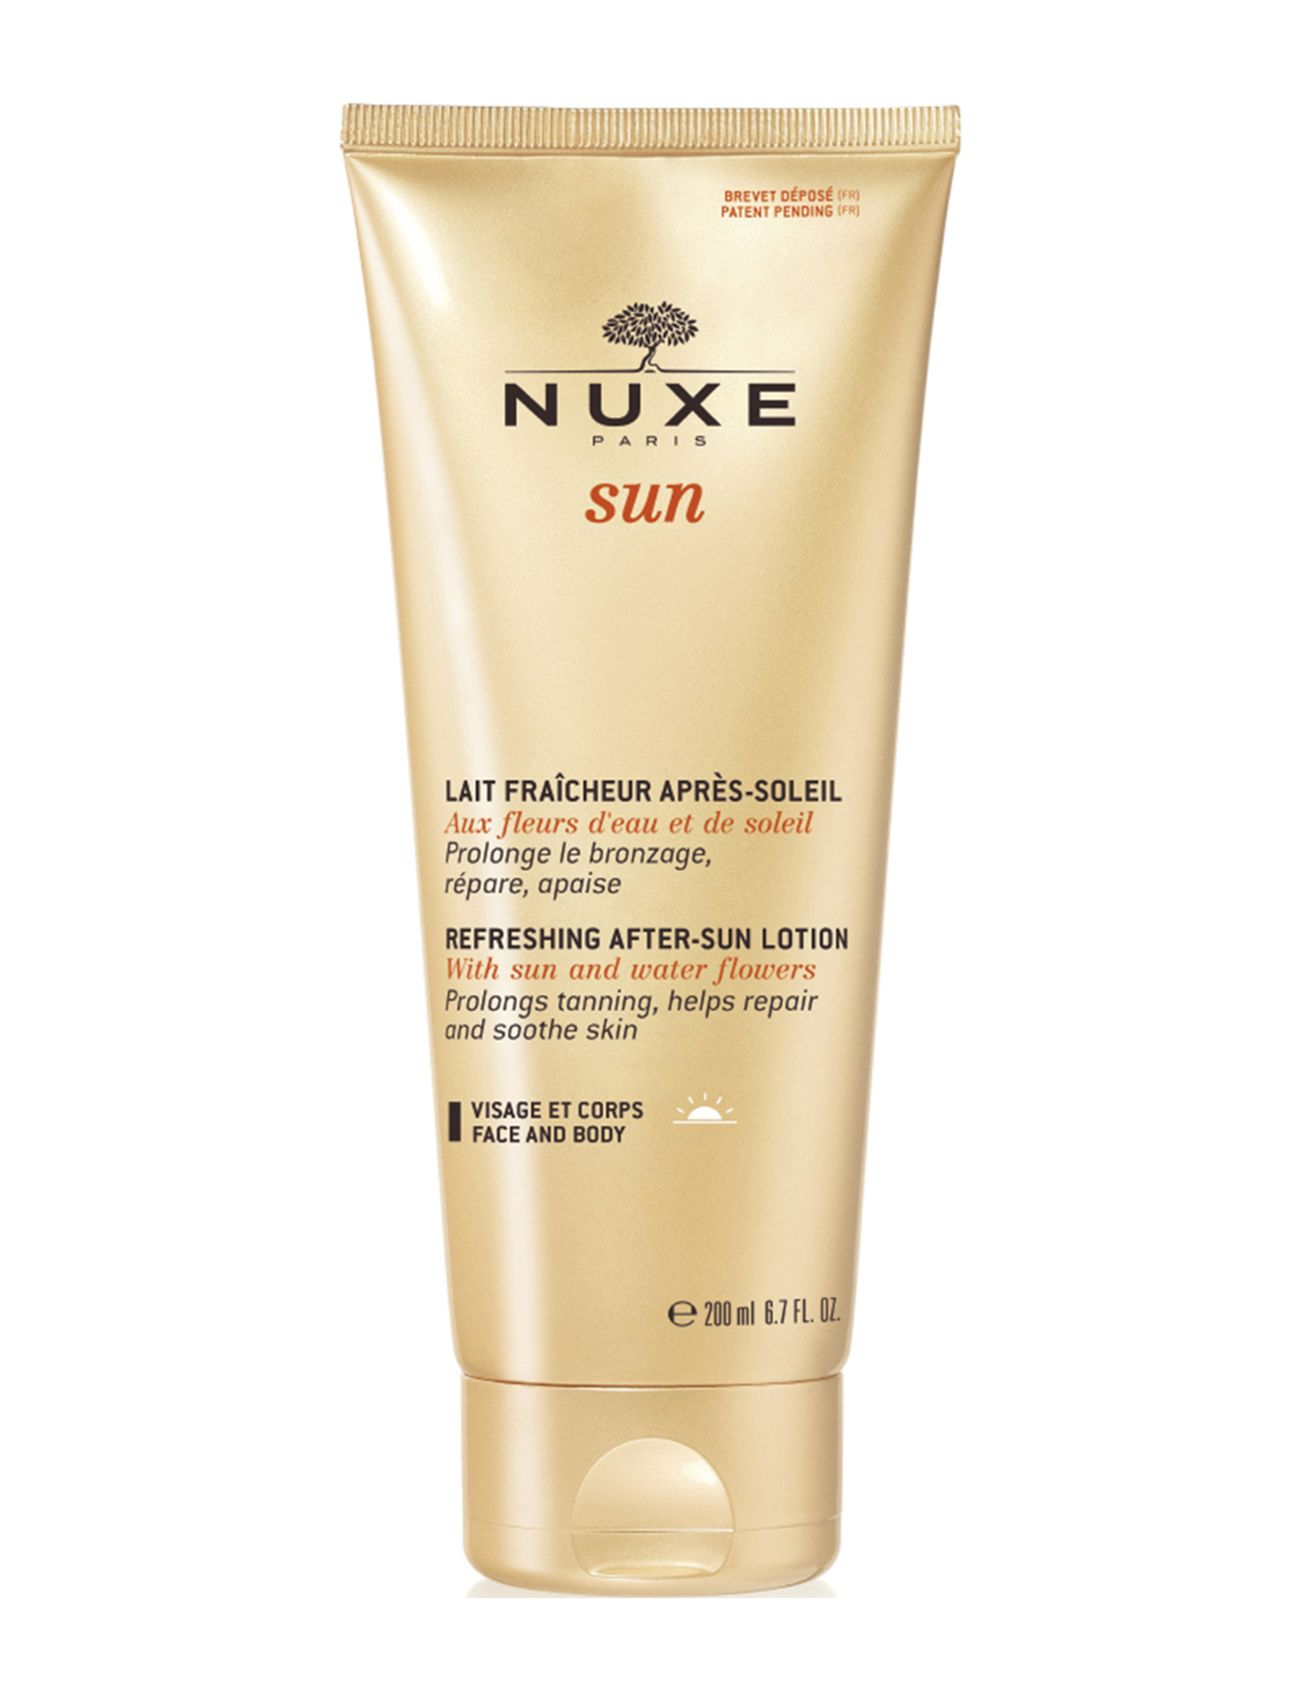 Image of Refreshing After-Sun Milk Beauty MEN Skin Care Sun Products Nude NUXE (3232944719)